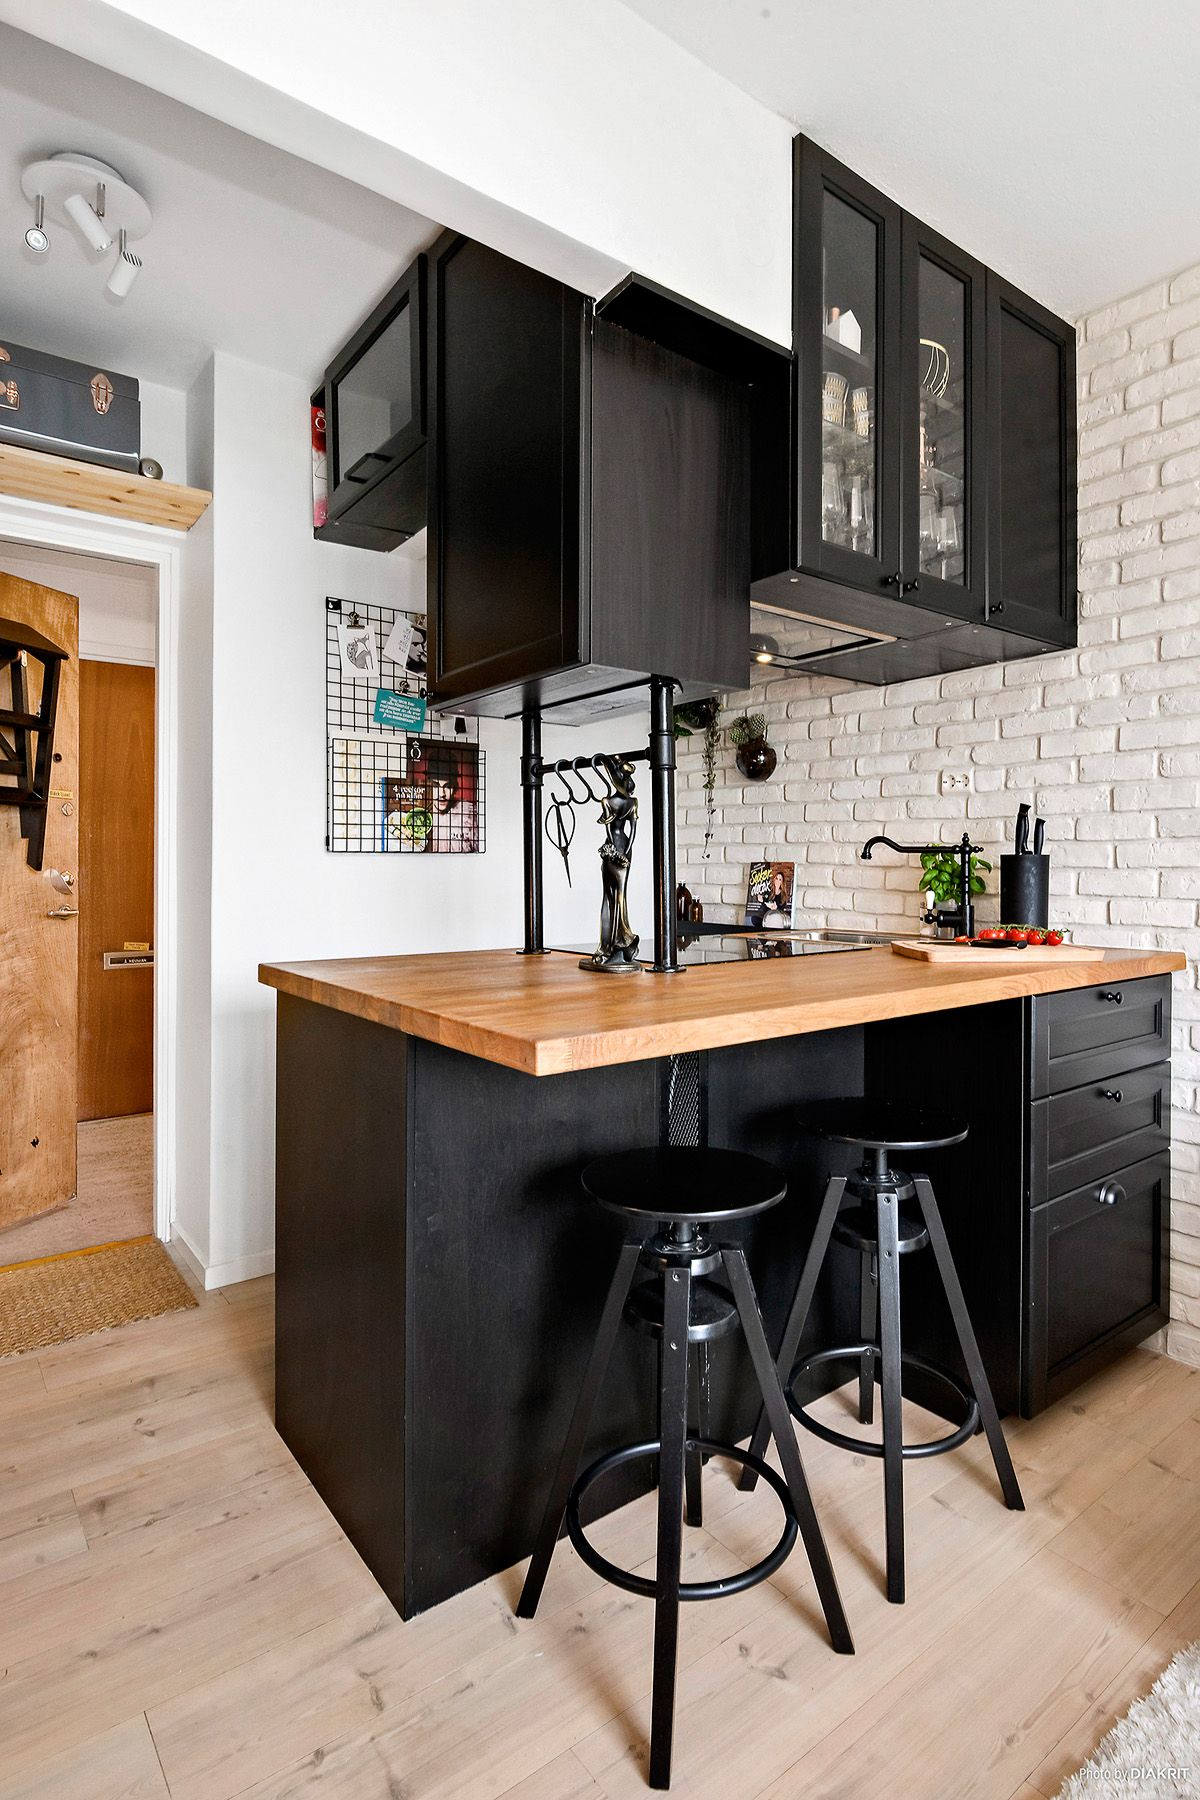 Esszimmer 20m2 Una Cocina En Negro Para 20m2 Decor Pinterest Kitchens